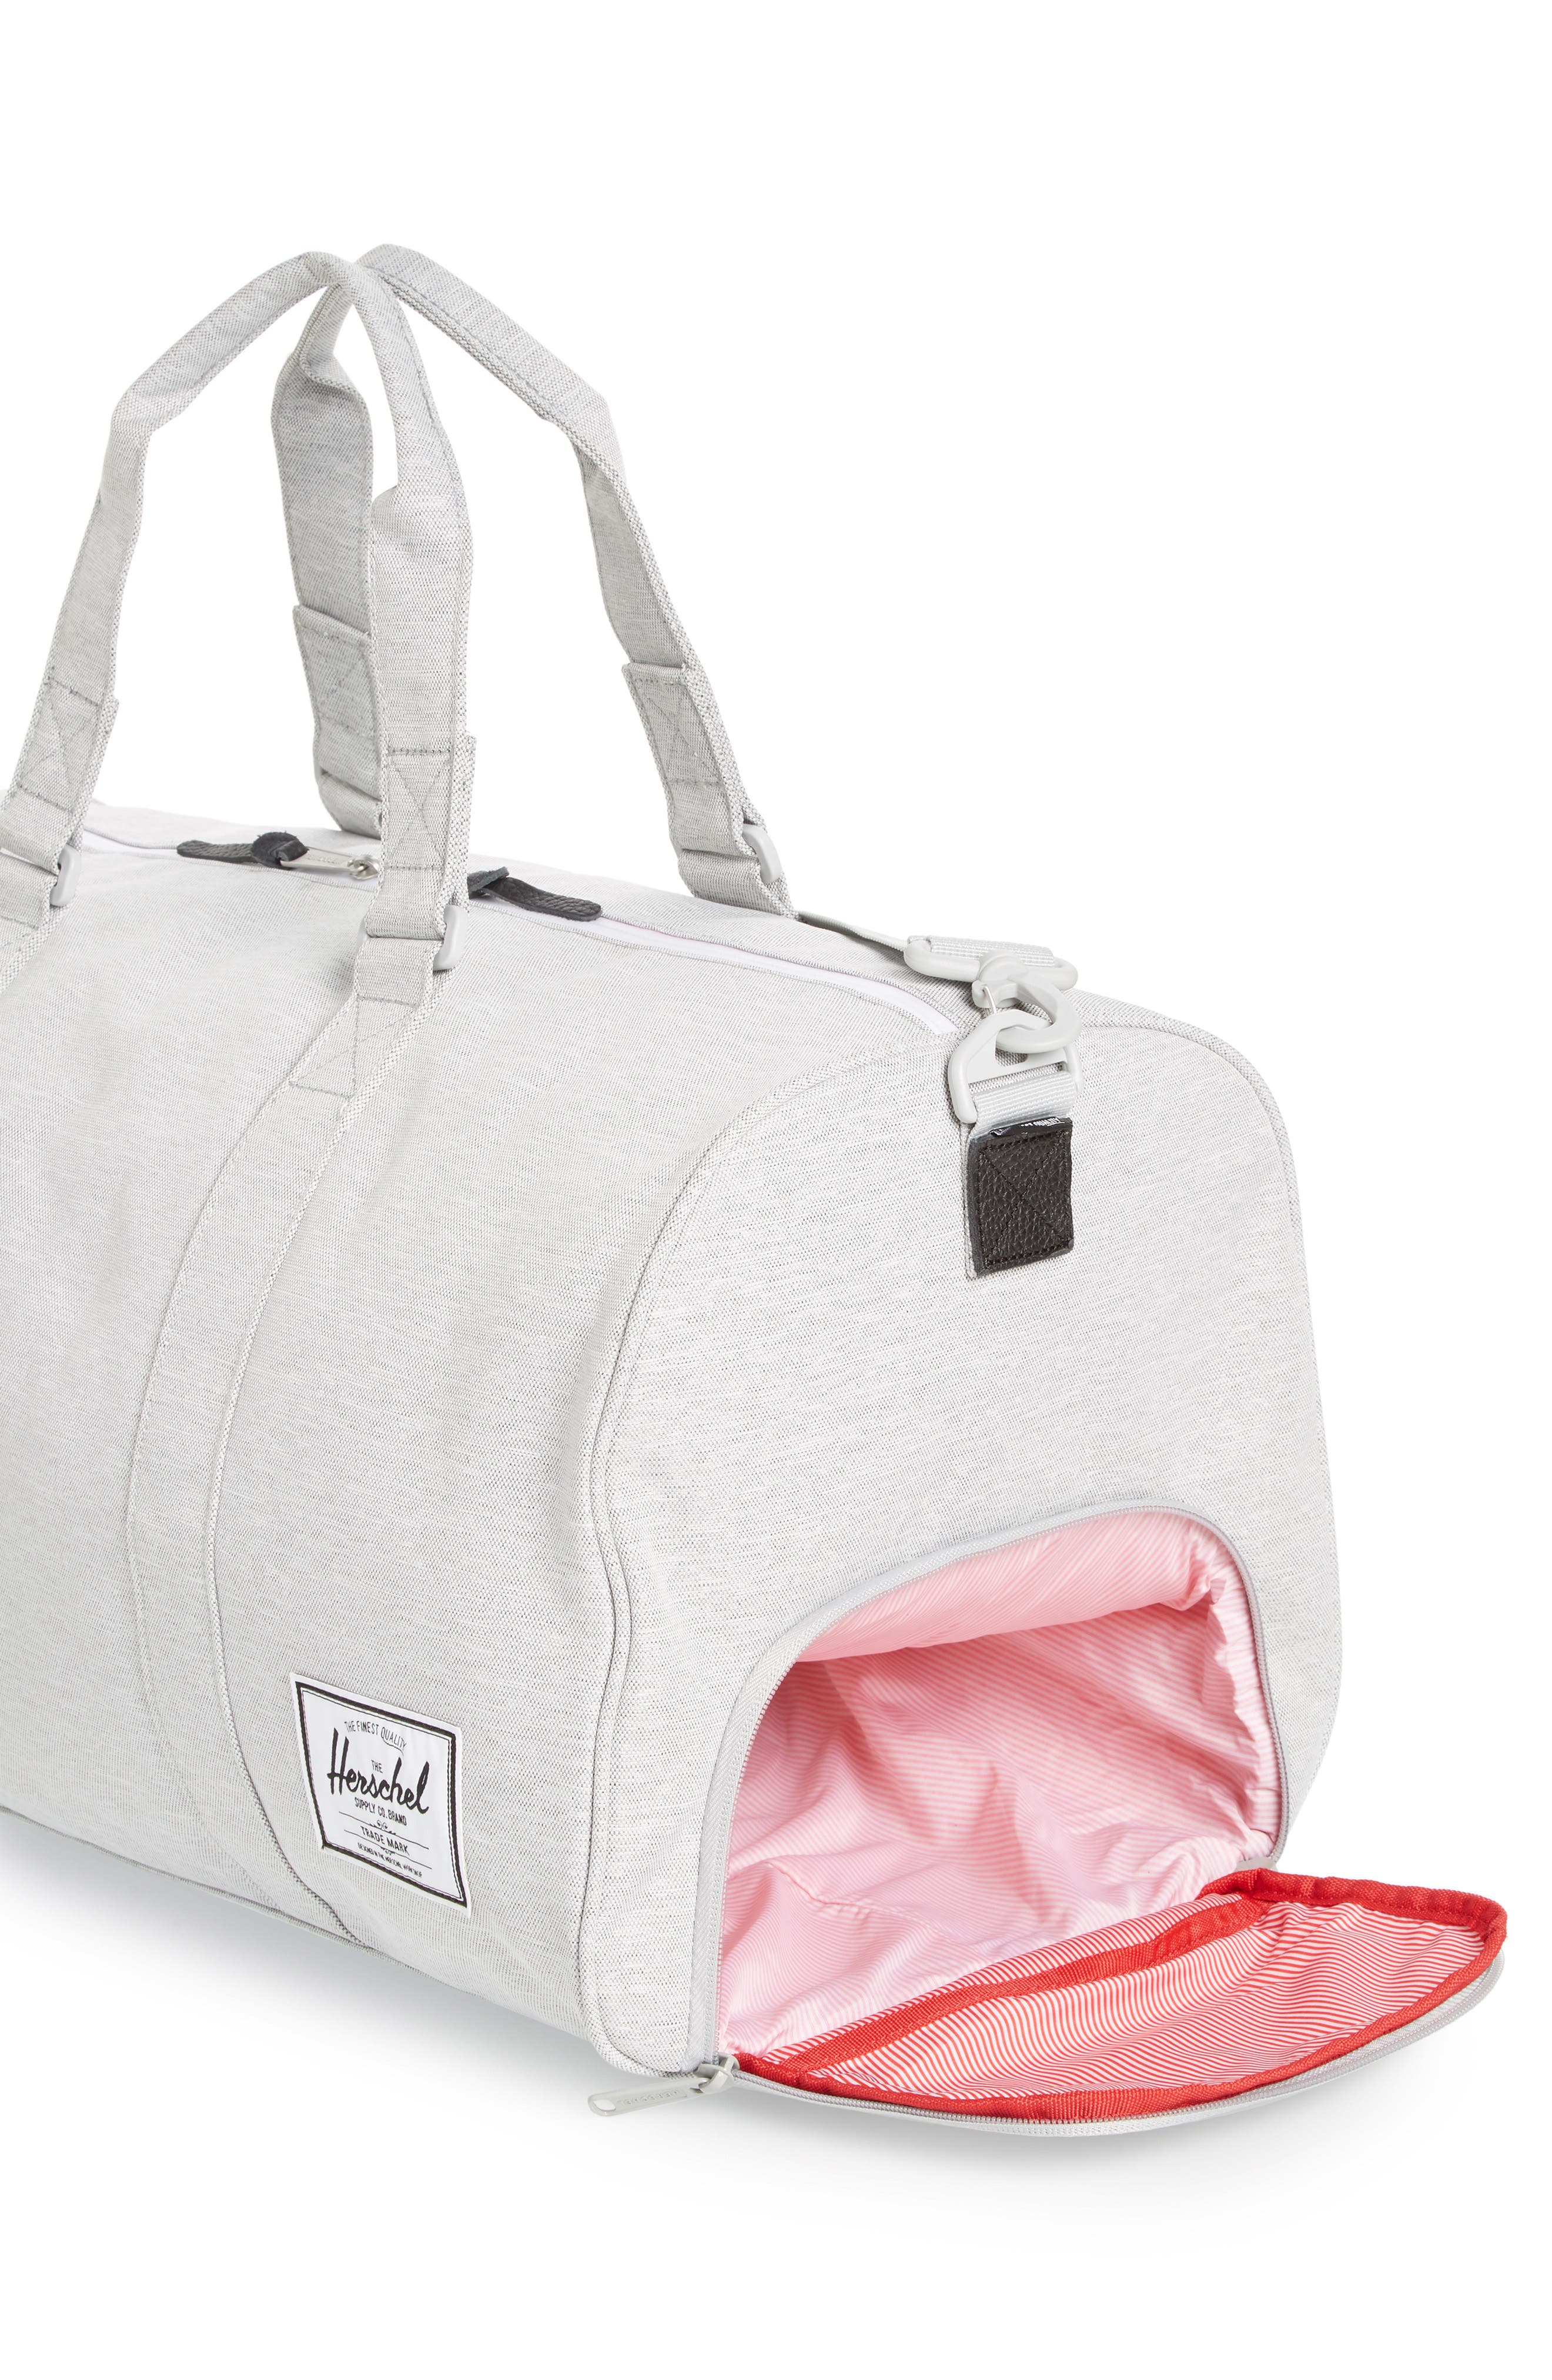 HERSCHEL SUPPLY CO., Novel Duffle Bag, Alternate thumbnail 4, color, LIGHT GREY CROSSHATCH